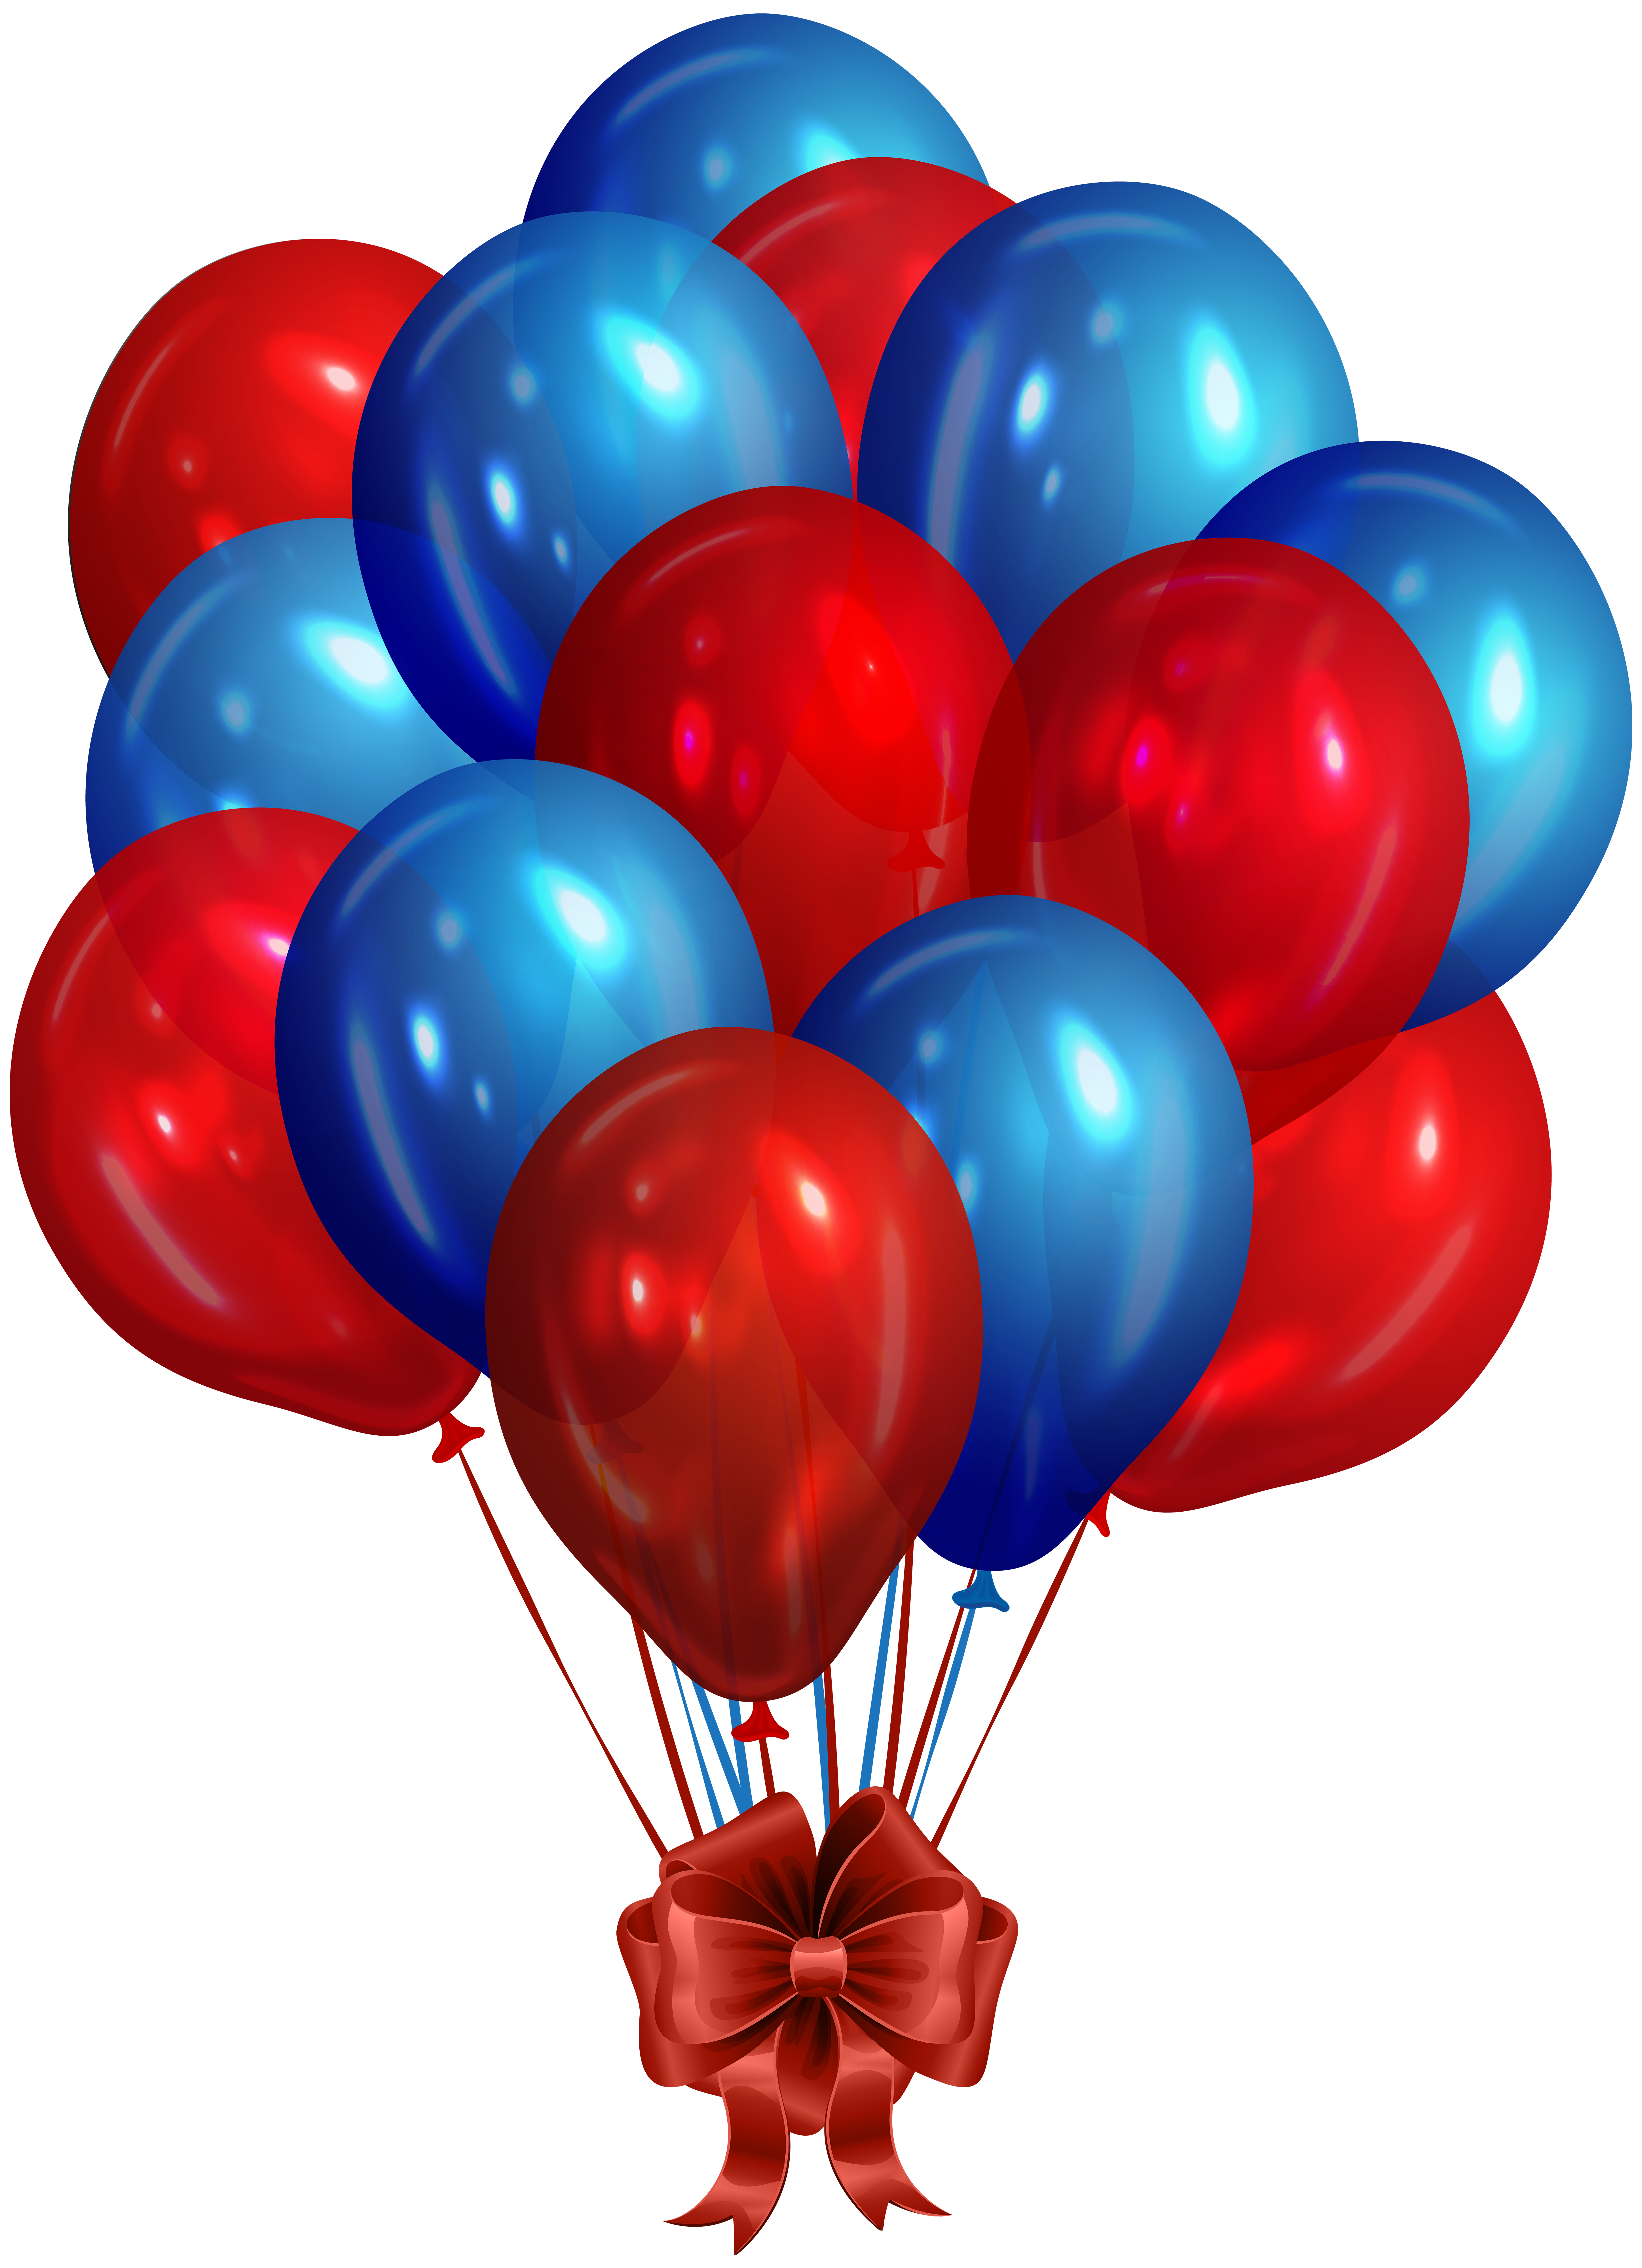 Png balloons. Blue red bunch of